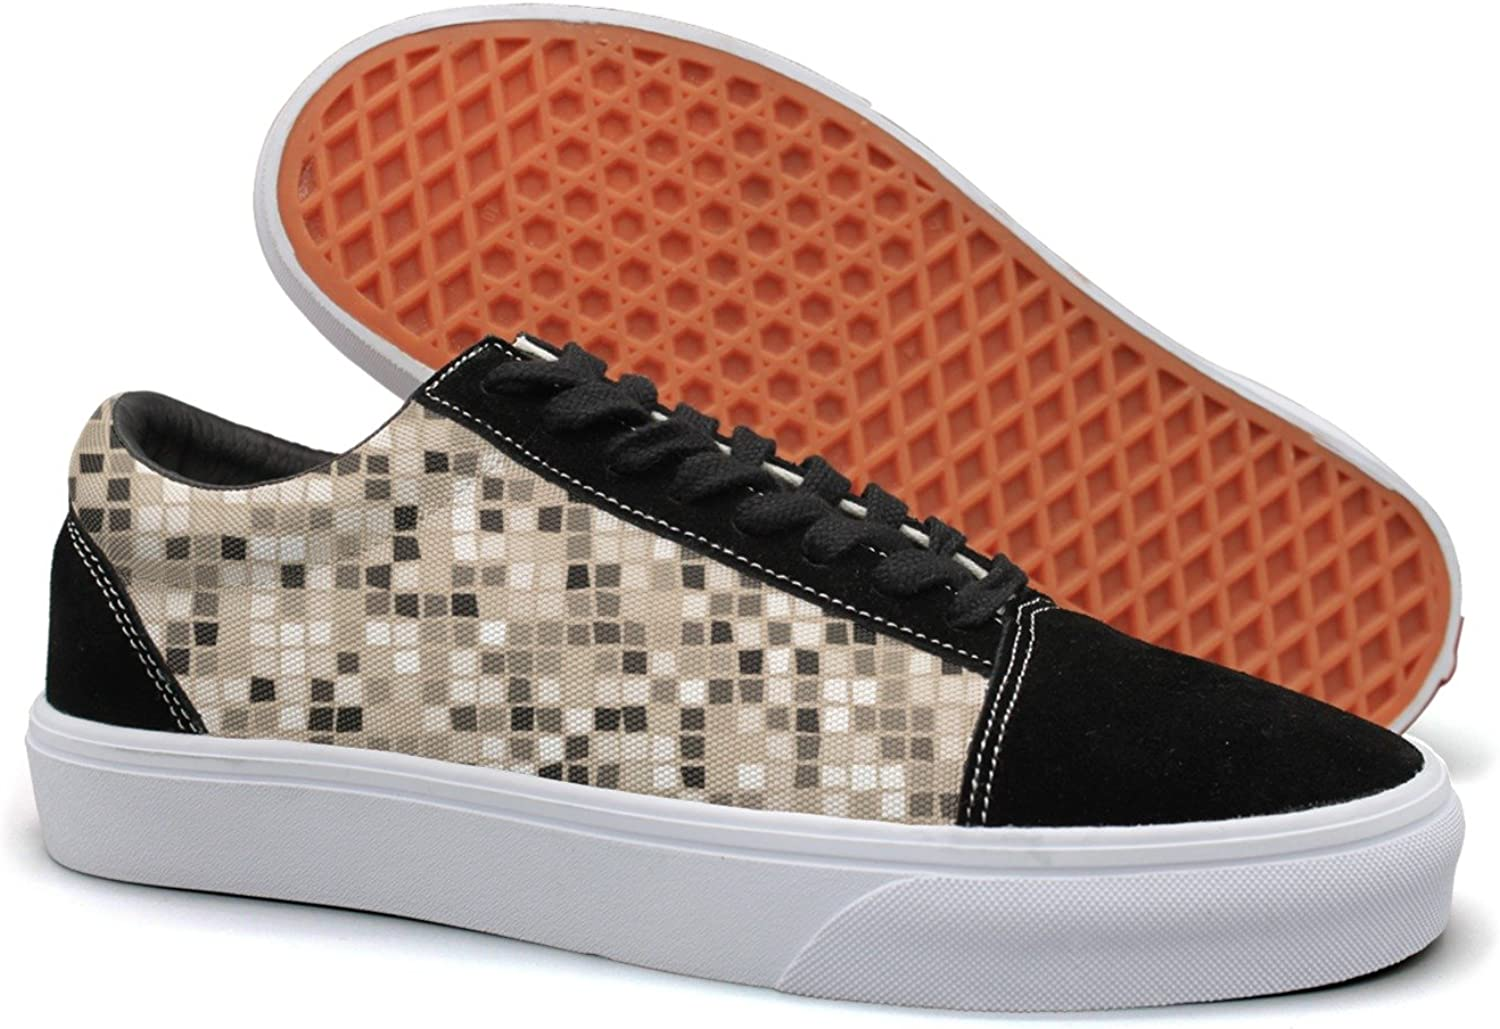 Winging Womens Abstract Mosaic Checkerboard Funny Canvas Sneakers Walking shoes